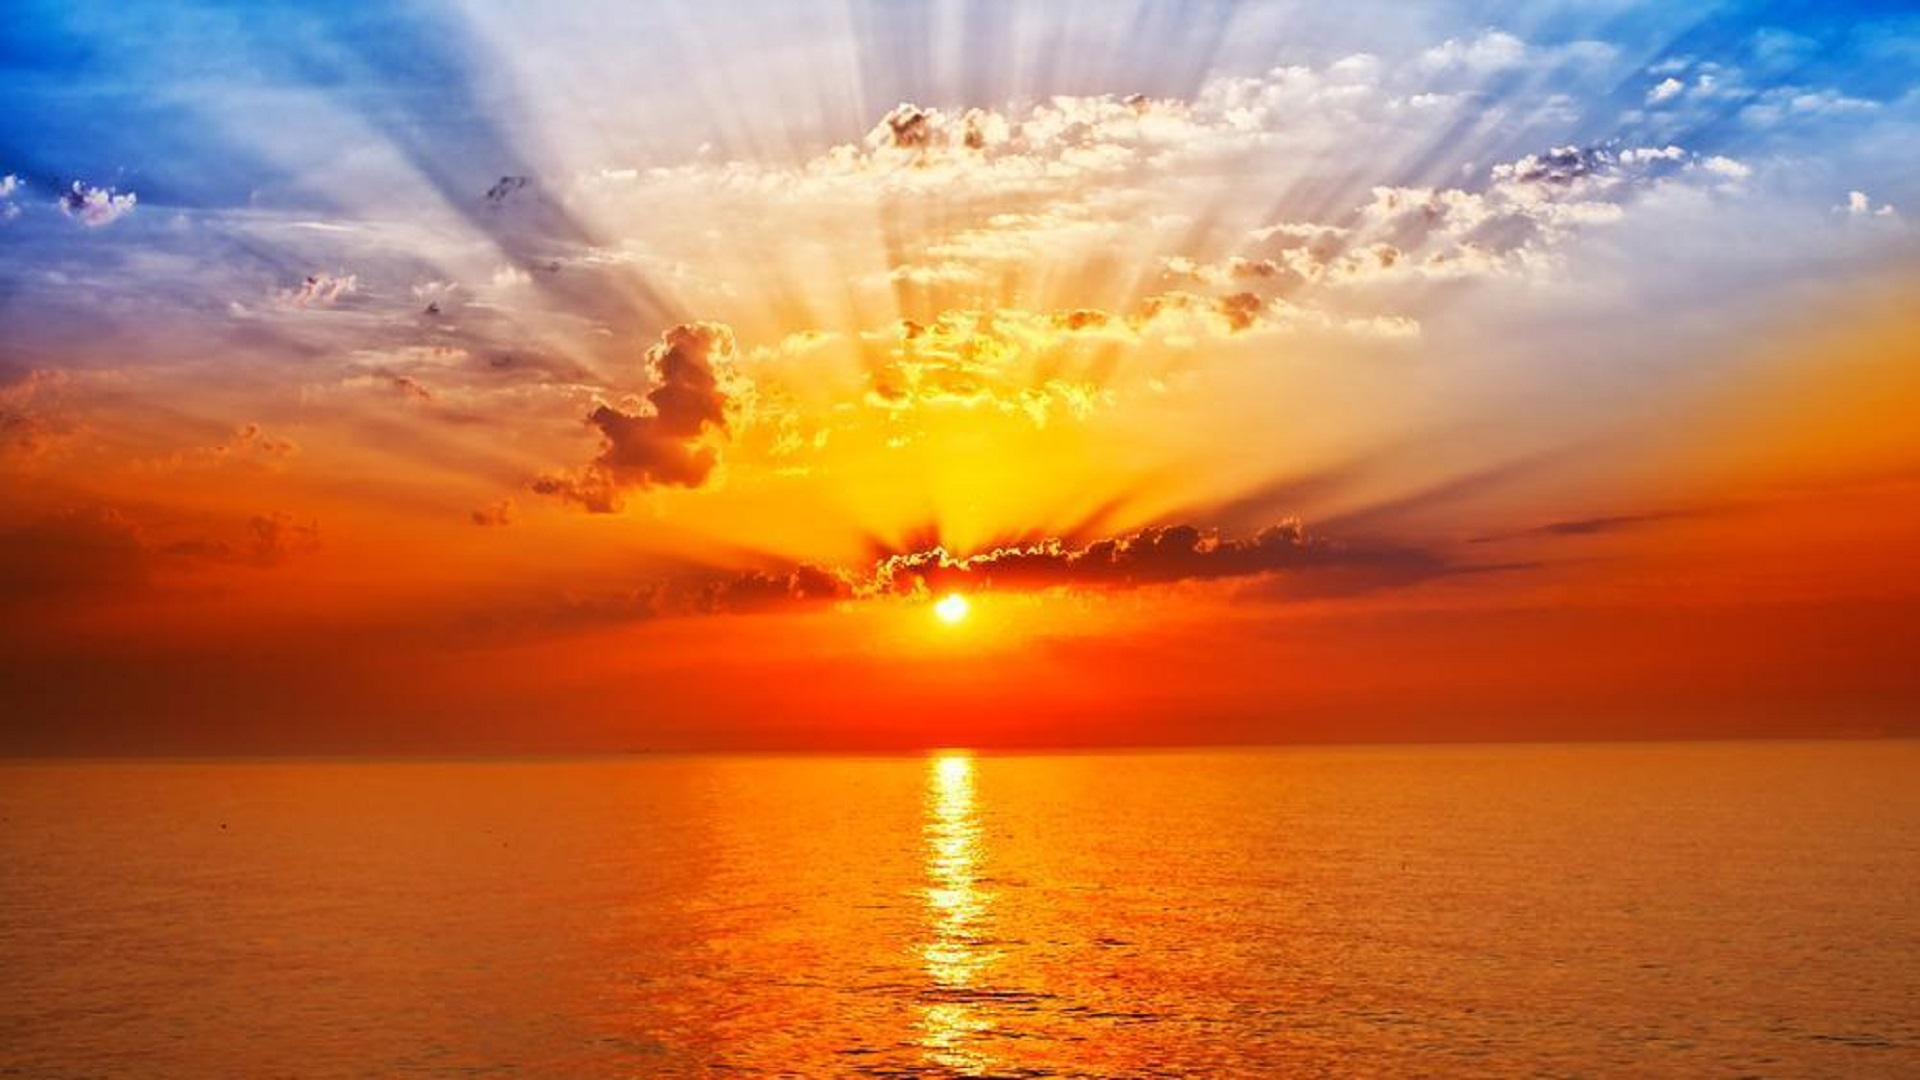 sunrise free hd wallpapers download